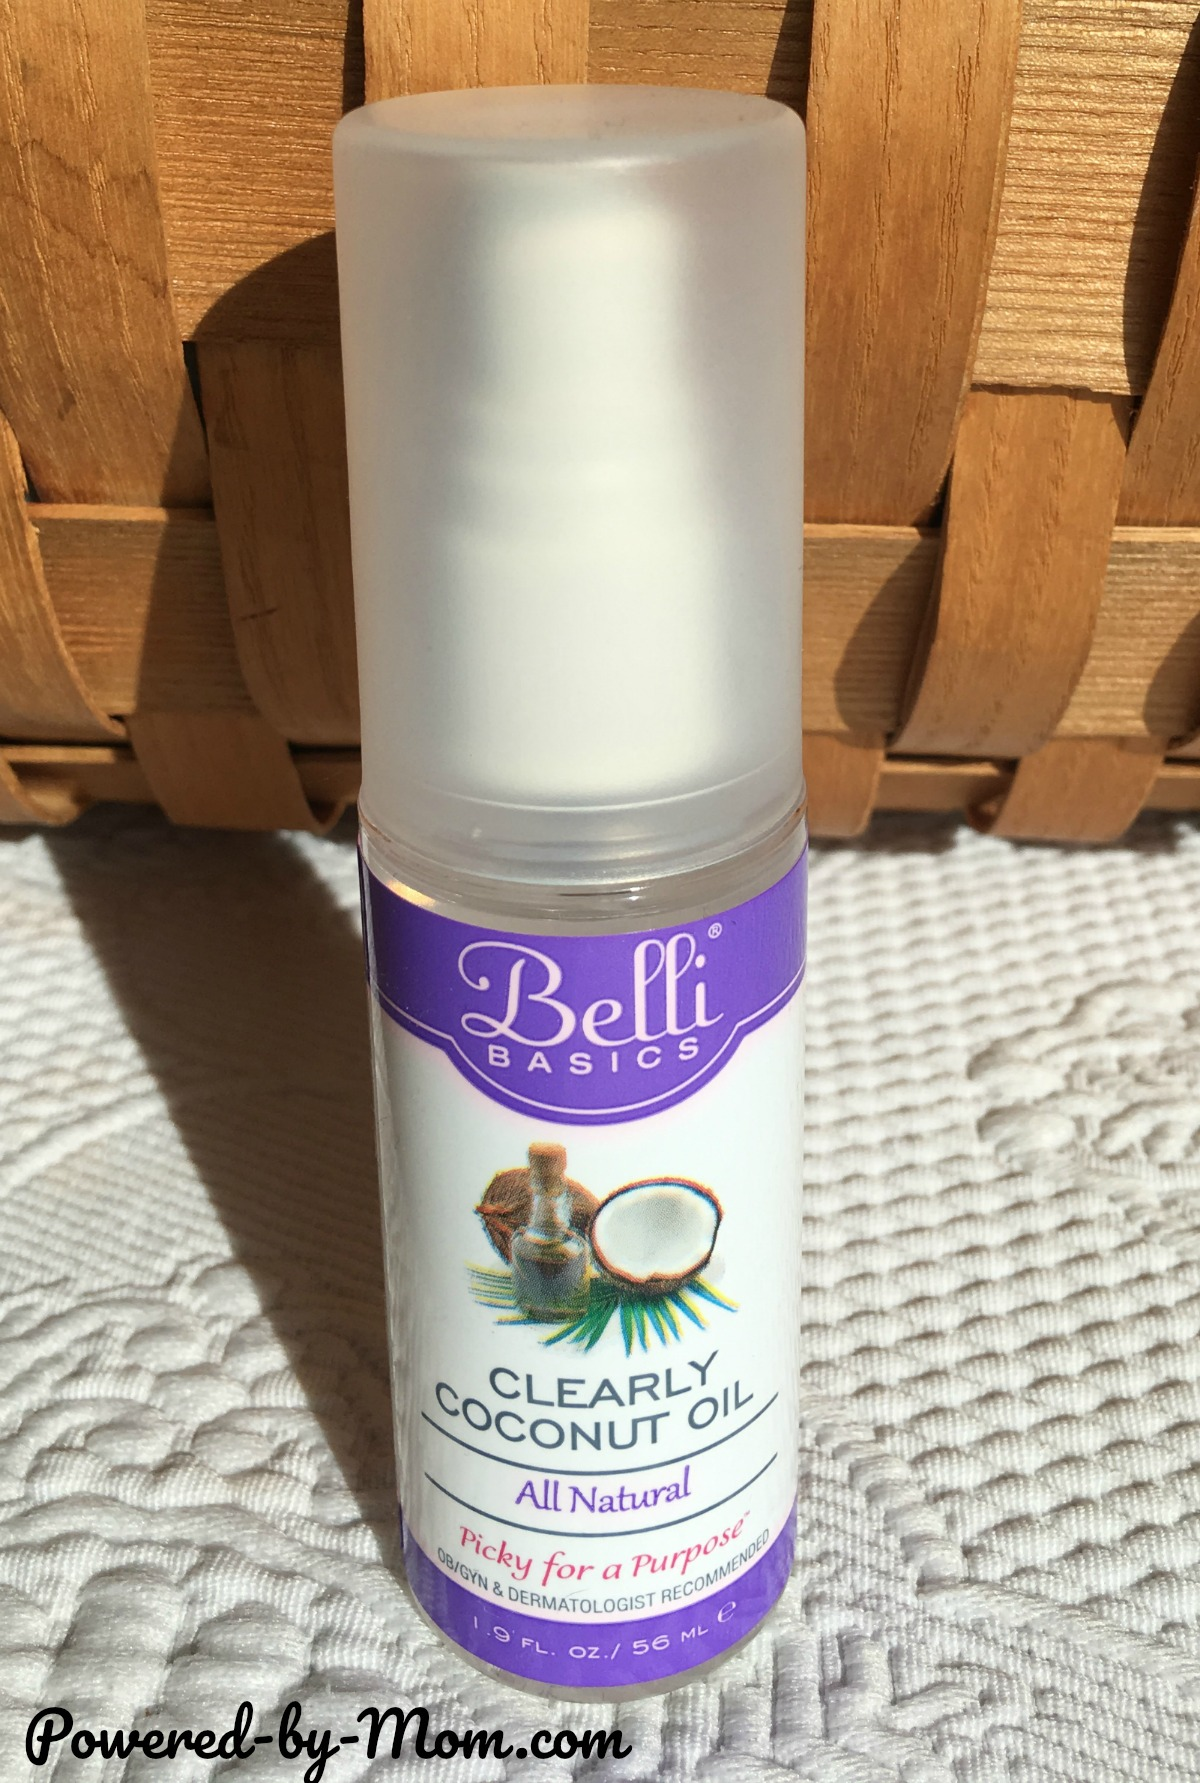 Belli Beauty Review of Daily Beauty Routine Products - Powered by Mom